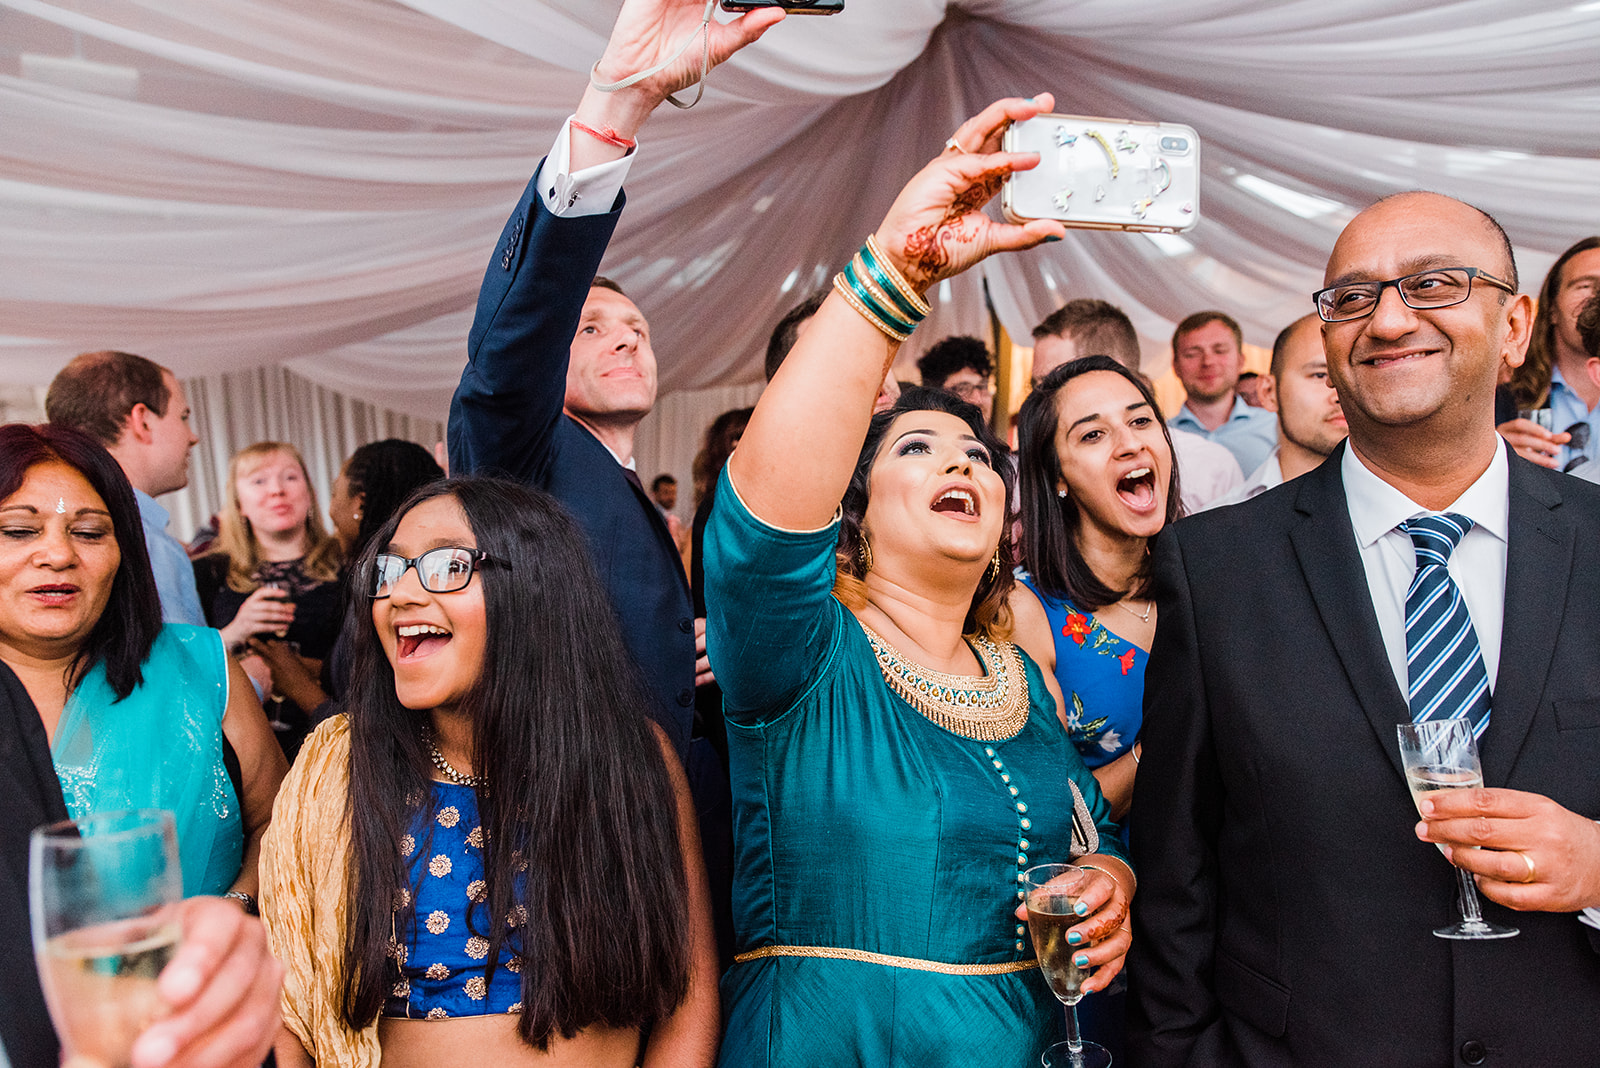 Wedding guests cheer and hold phones up to record wedding speech at cultural fusion wedding at Greenwich Yacht Club